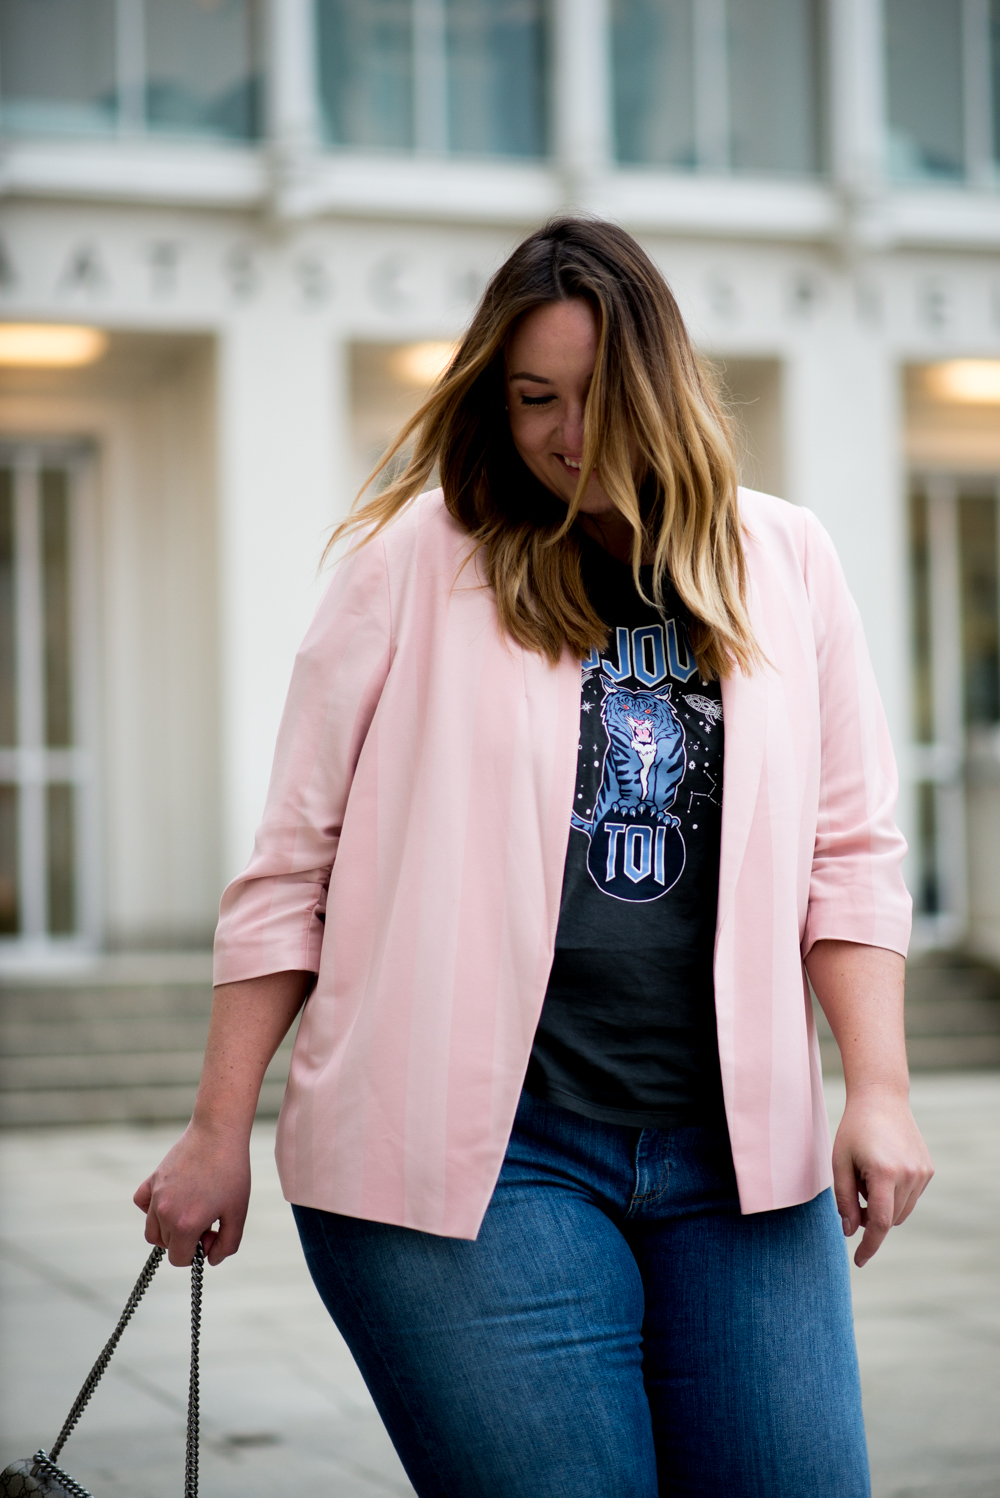 The Skinny and the Curvy One_Plussize_Blogger_Fashionblog Deutschland_Blogger_Curve Fashion (6 von 8)